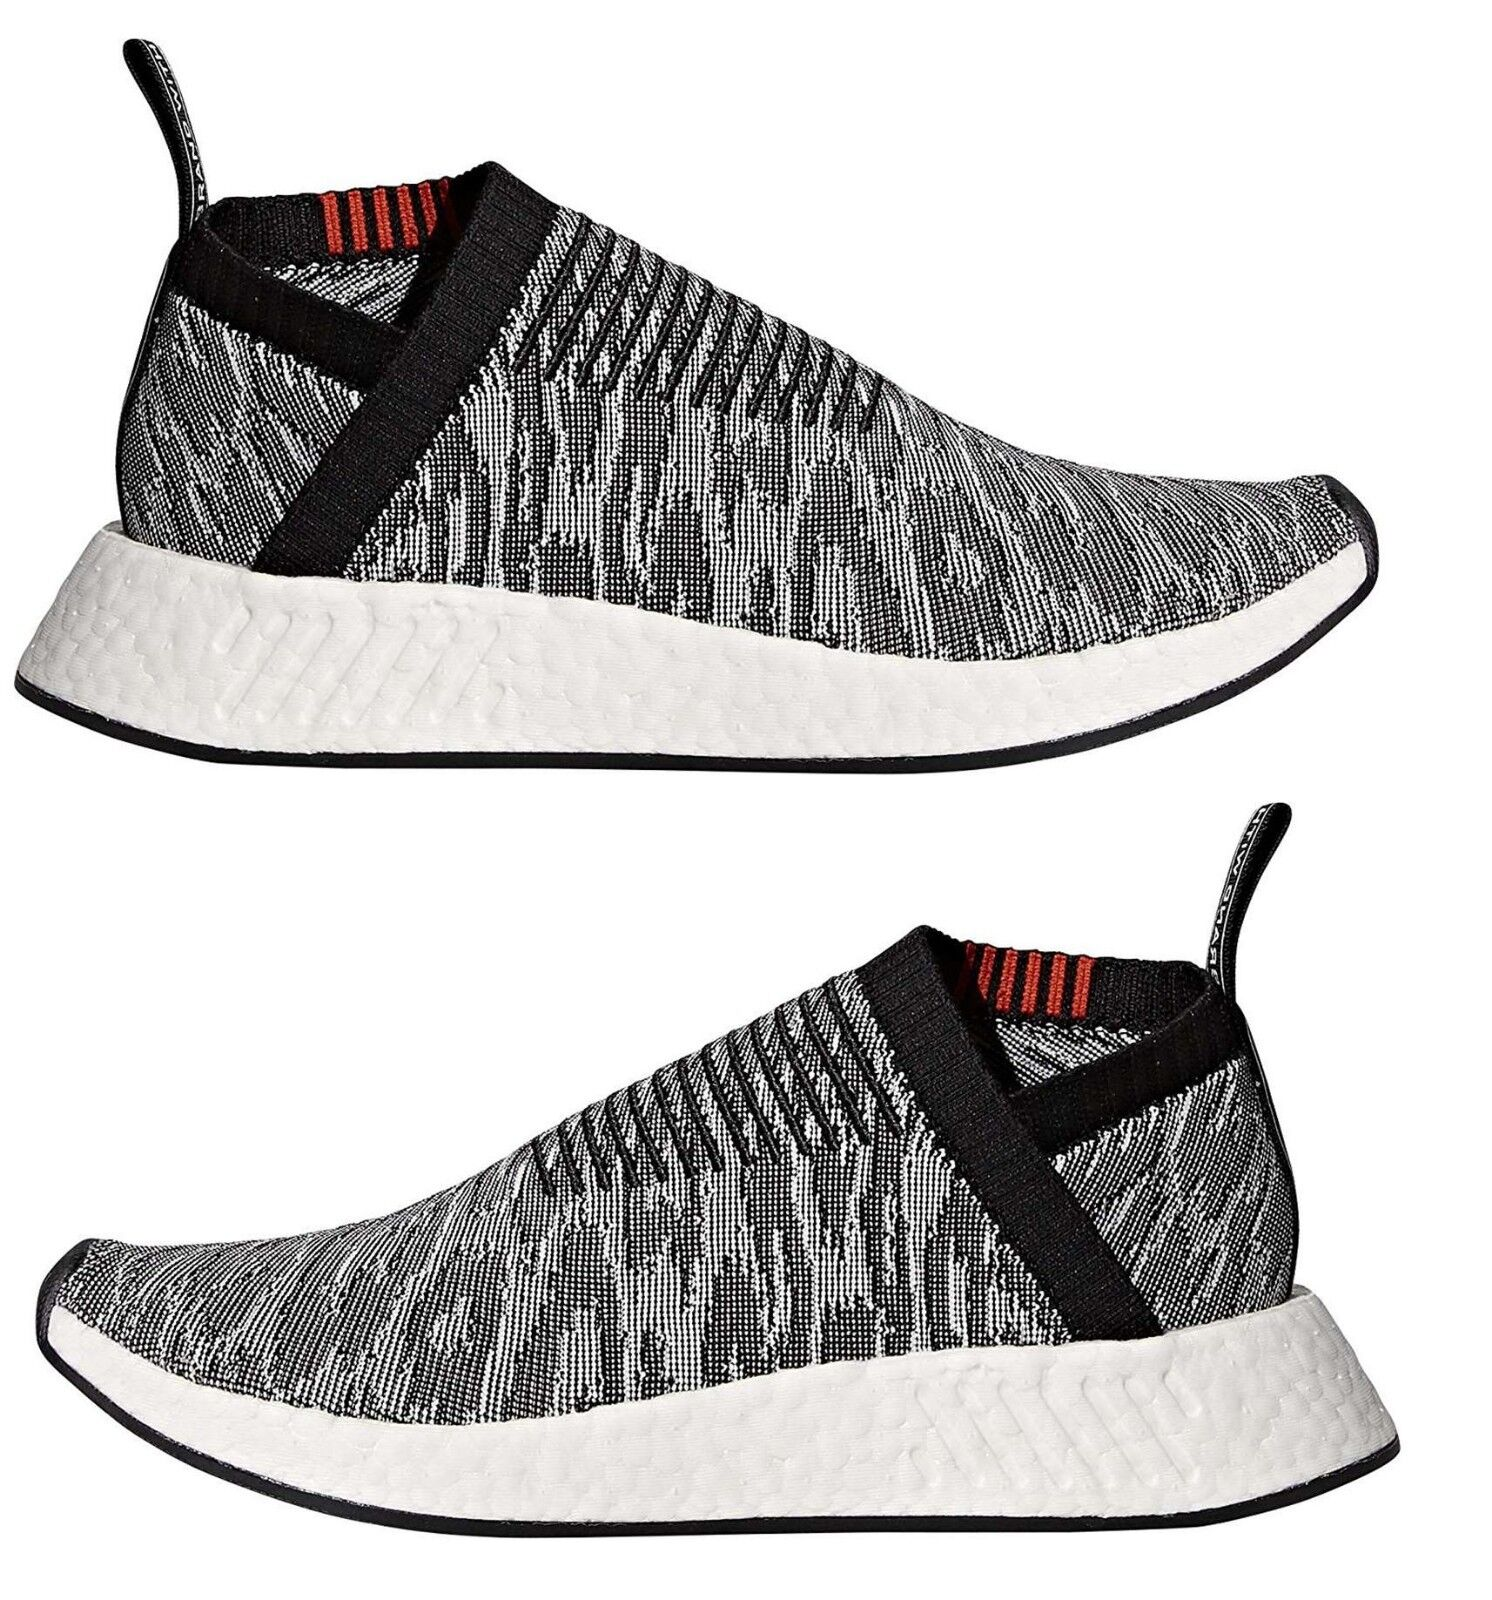 NEW Adidas Boost Men Athletic Shoes NMD CS2 Prime Knit Running Slip On Sneakers